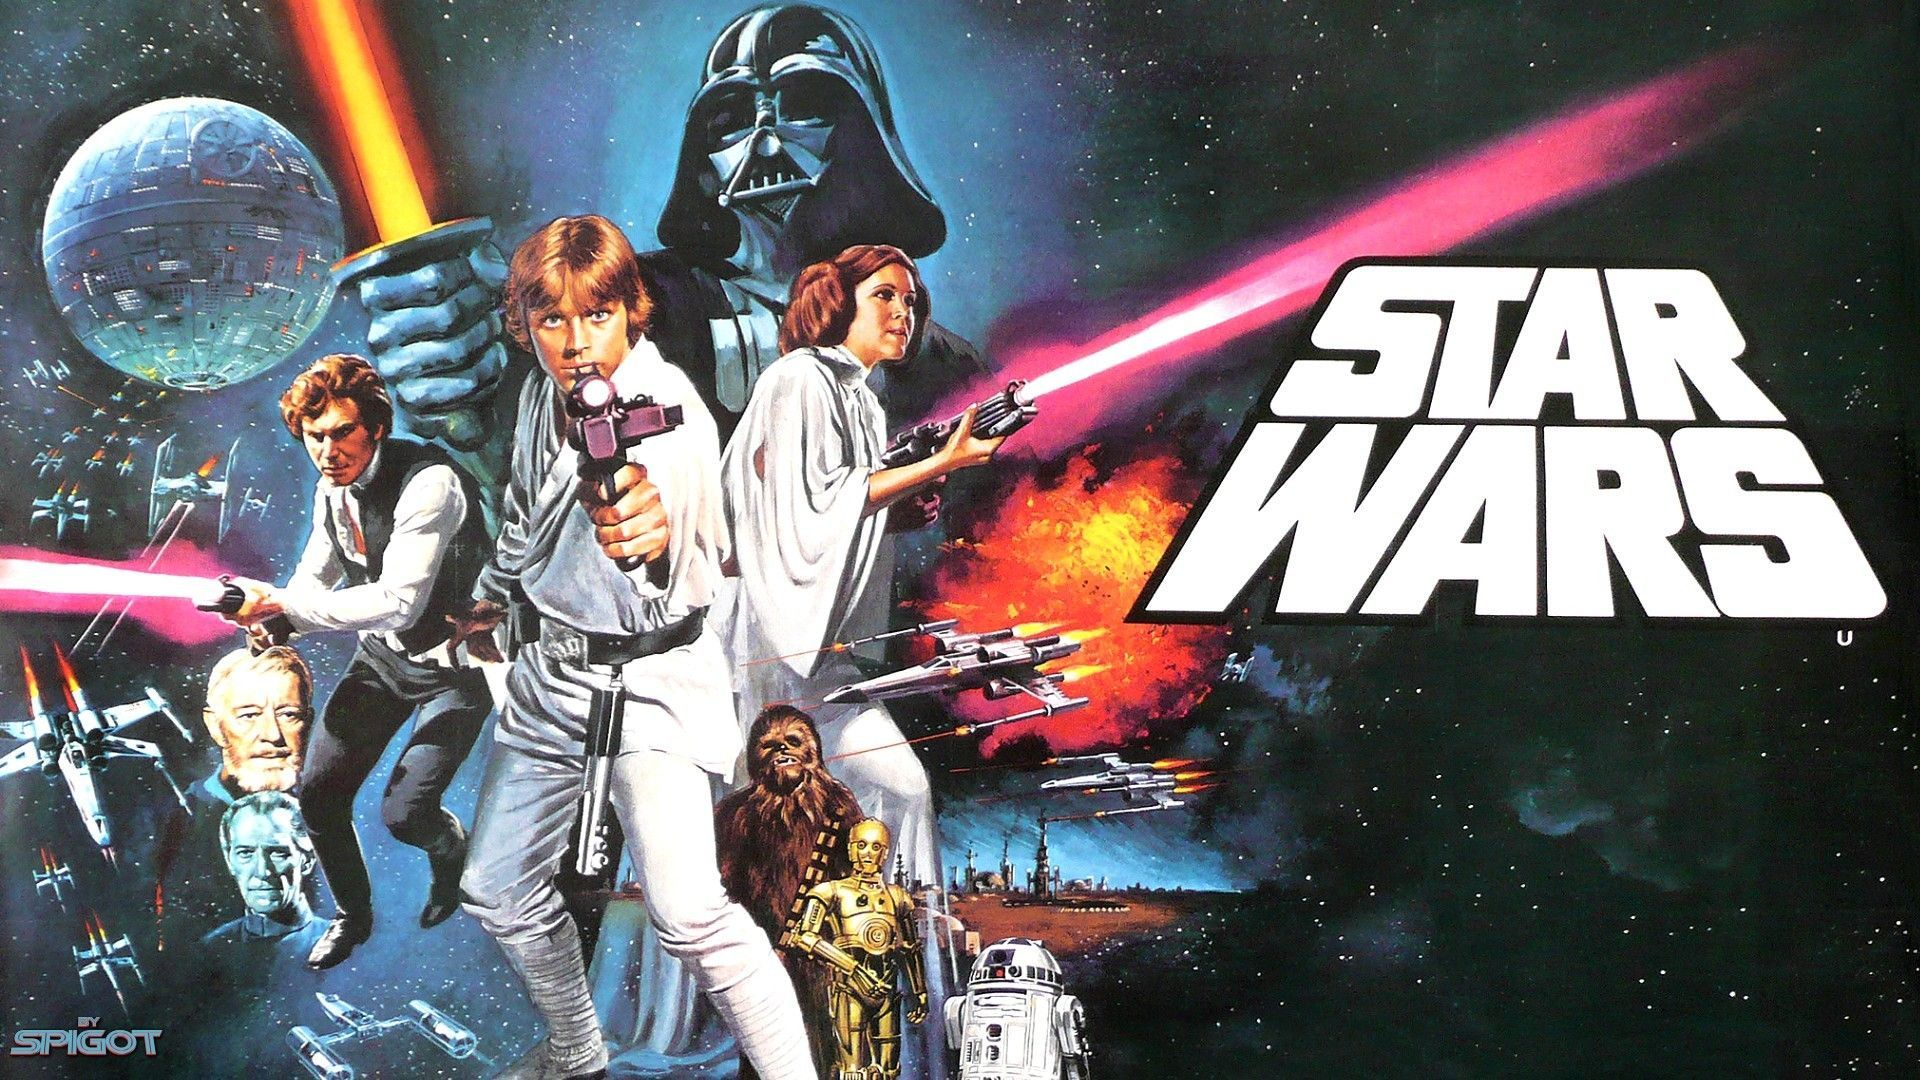 Star Wars Poster Wallpaper